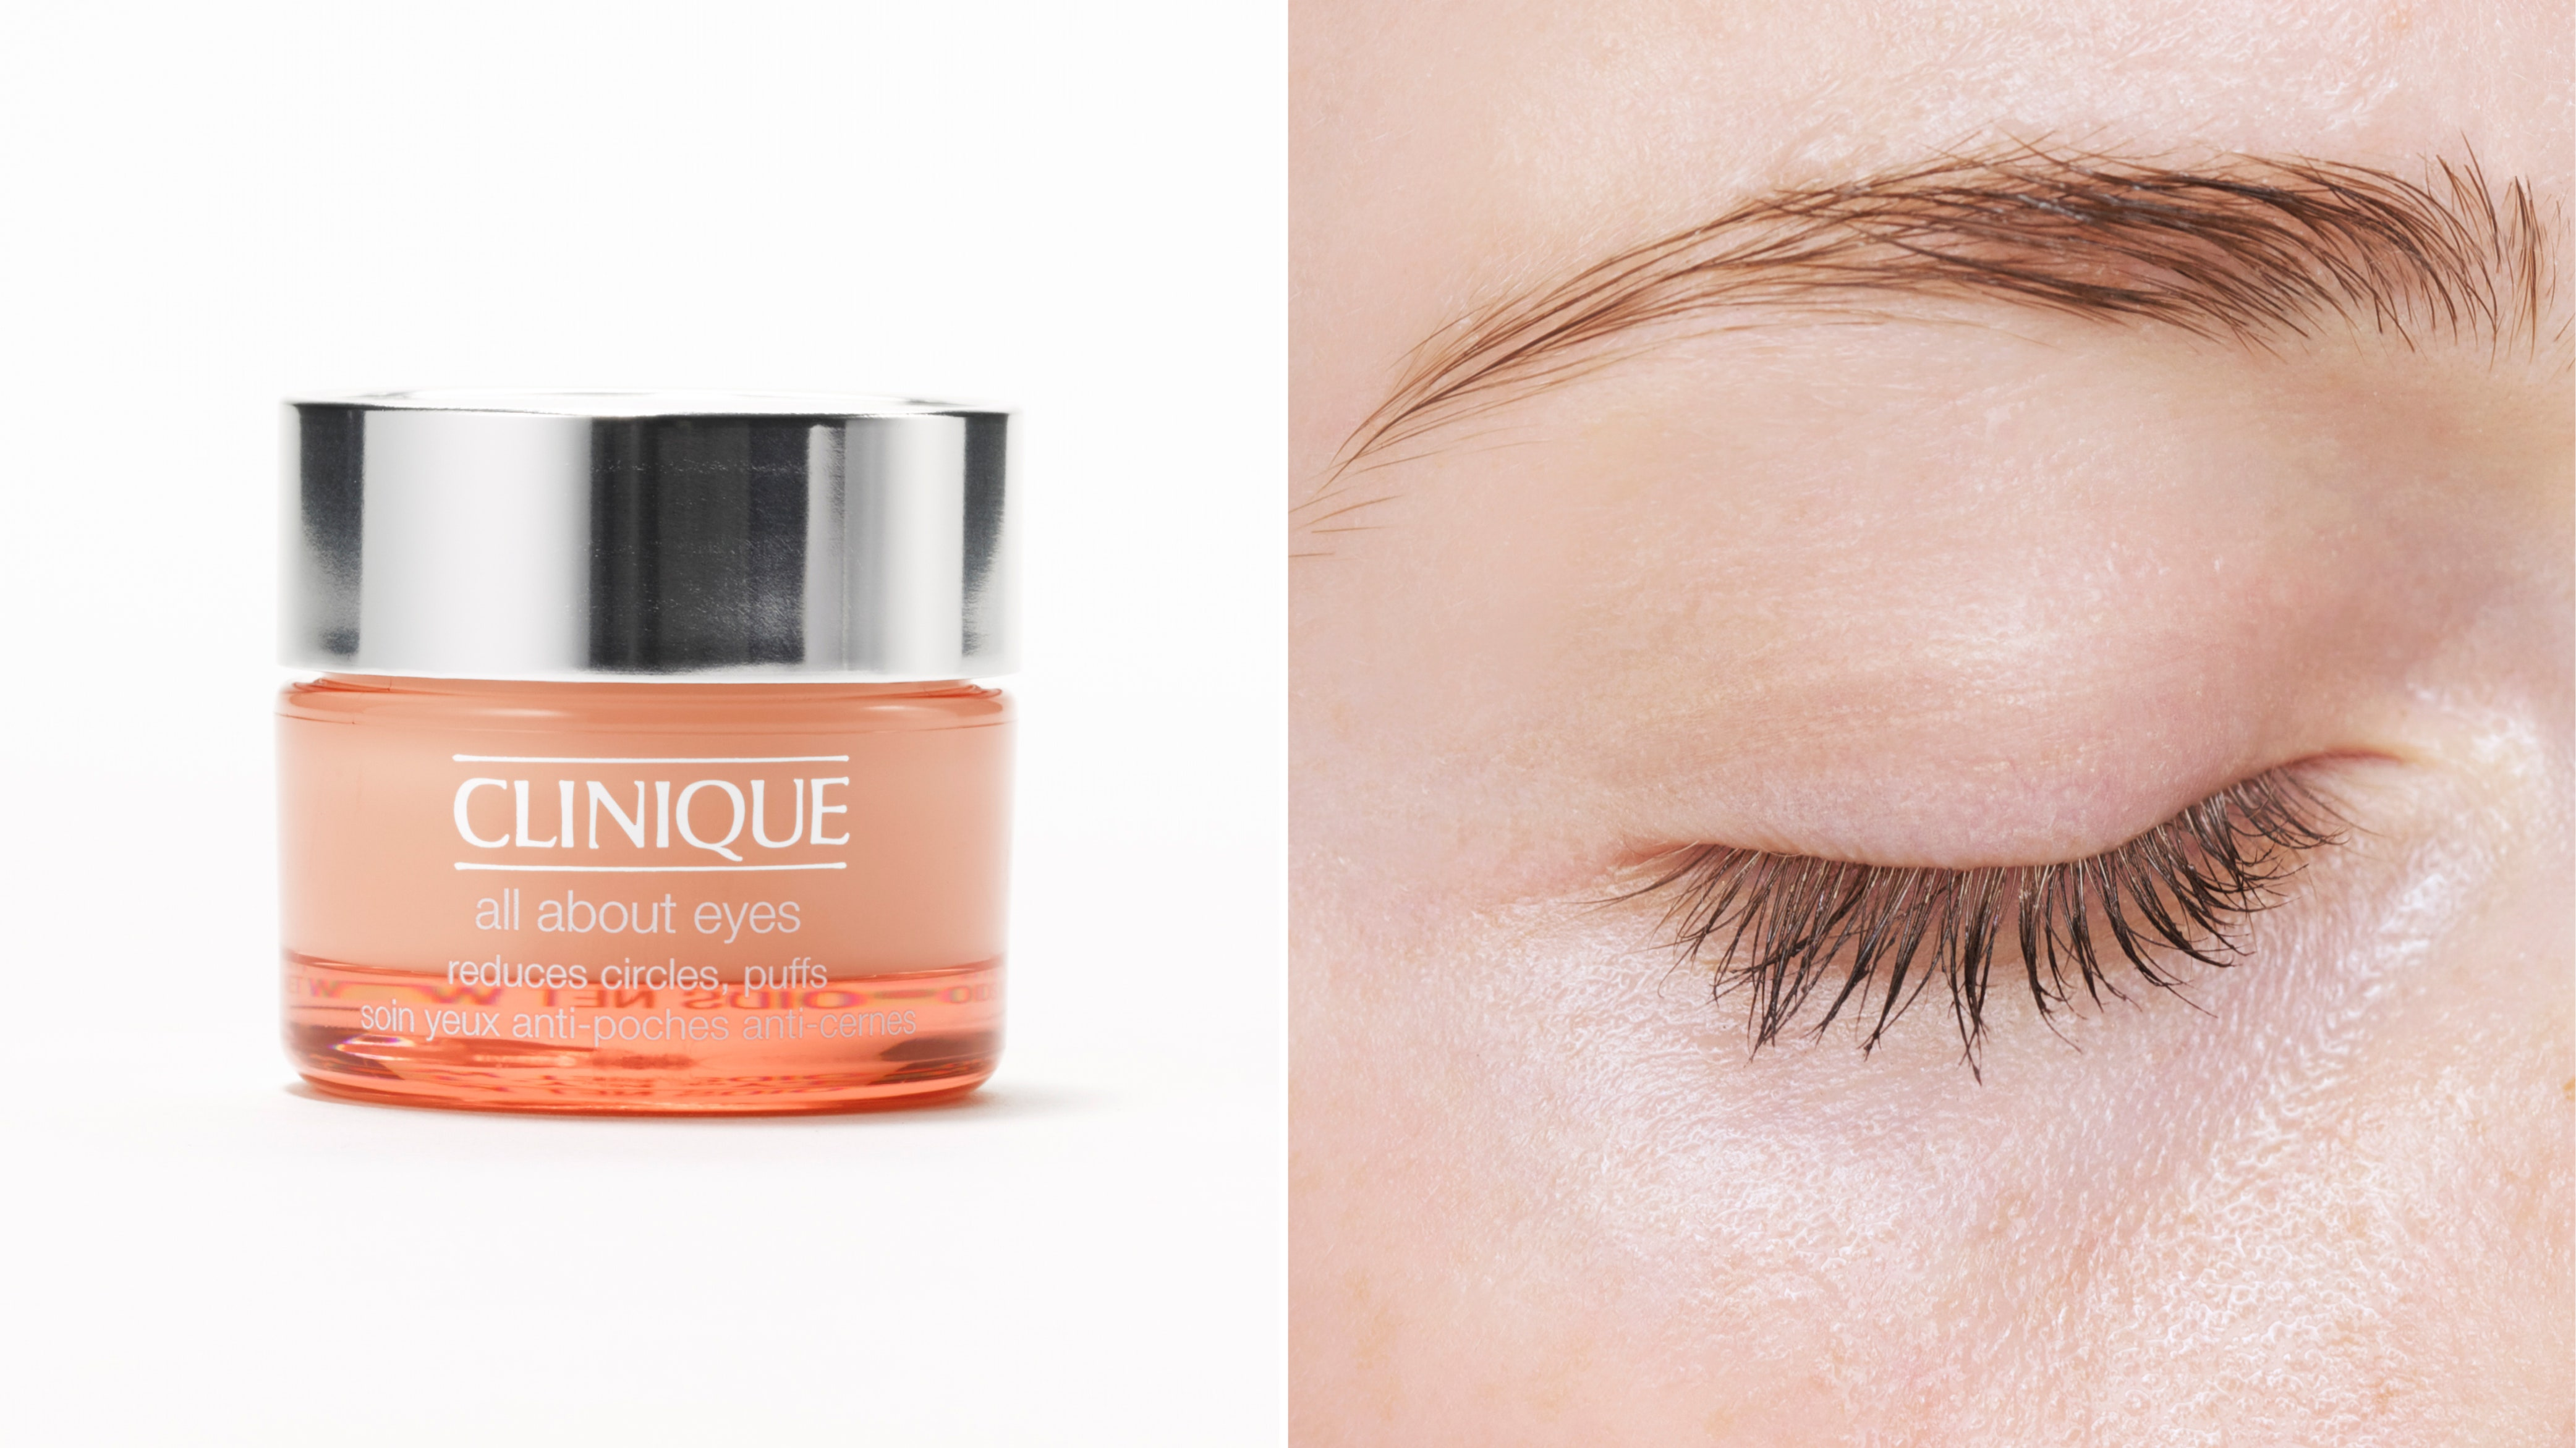 clinique all about eyes review indonesia